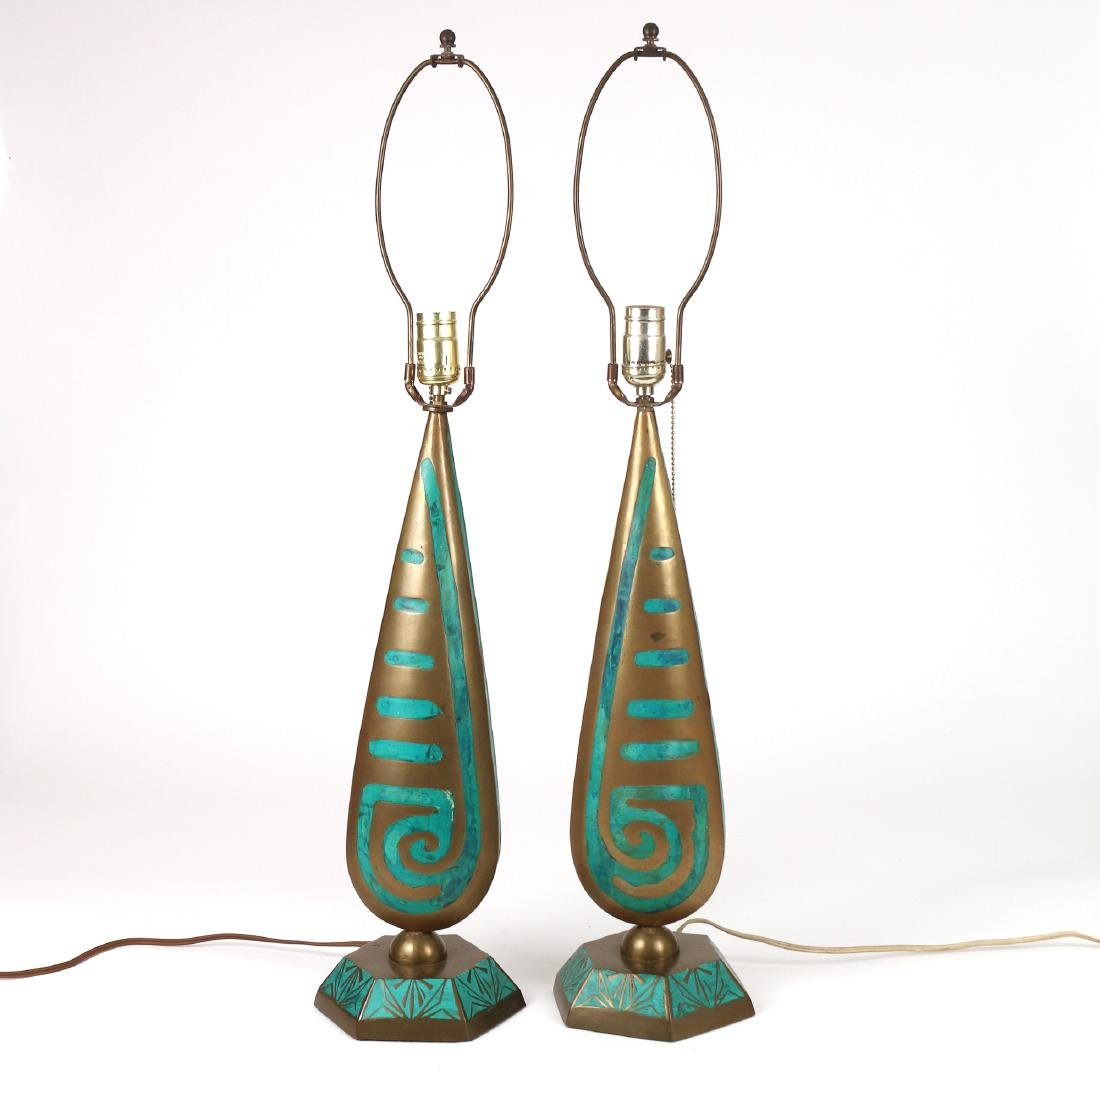 PAIR BRASS & ENAMEL DECORATED LAMPS - 2